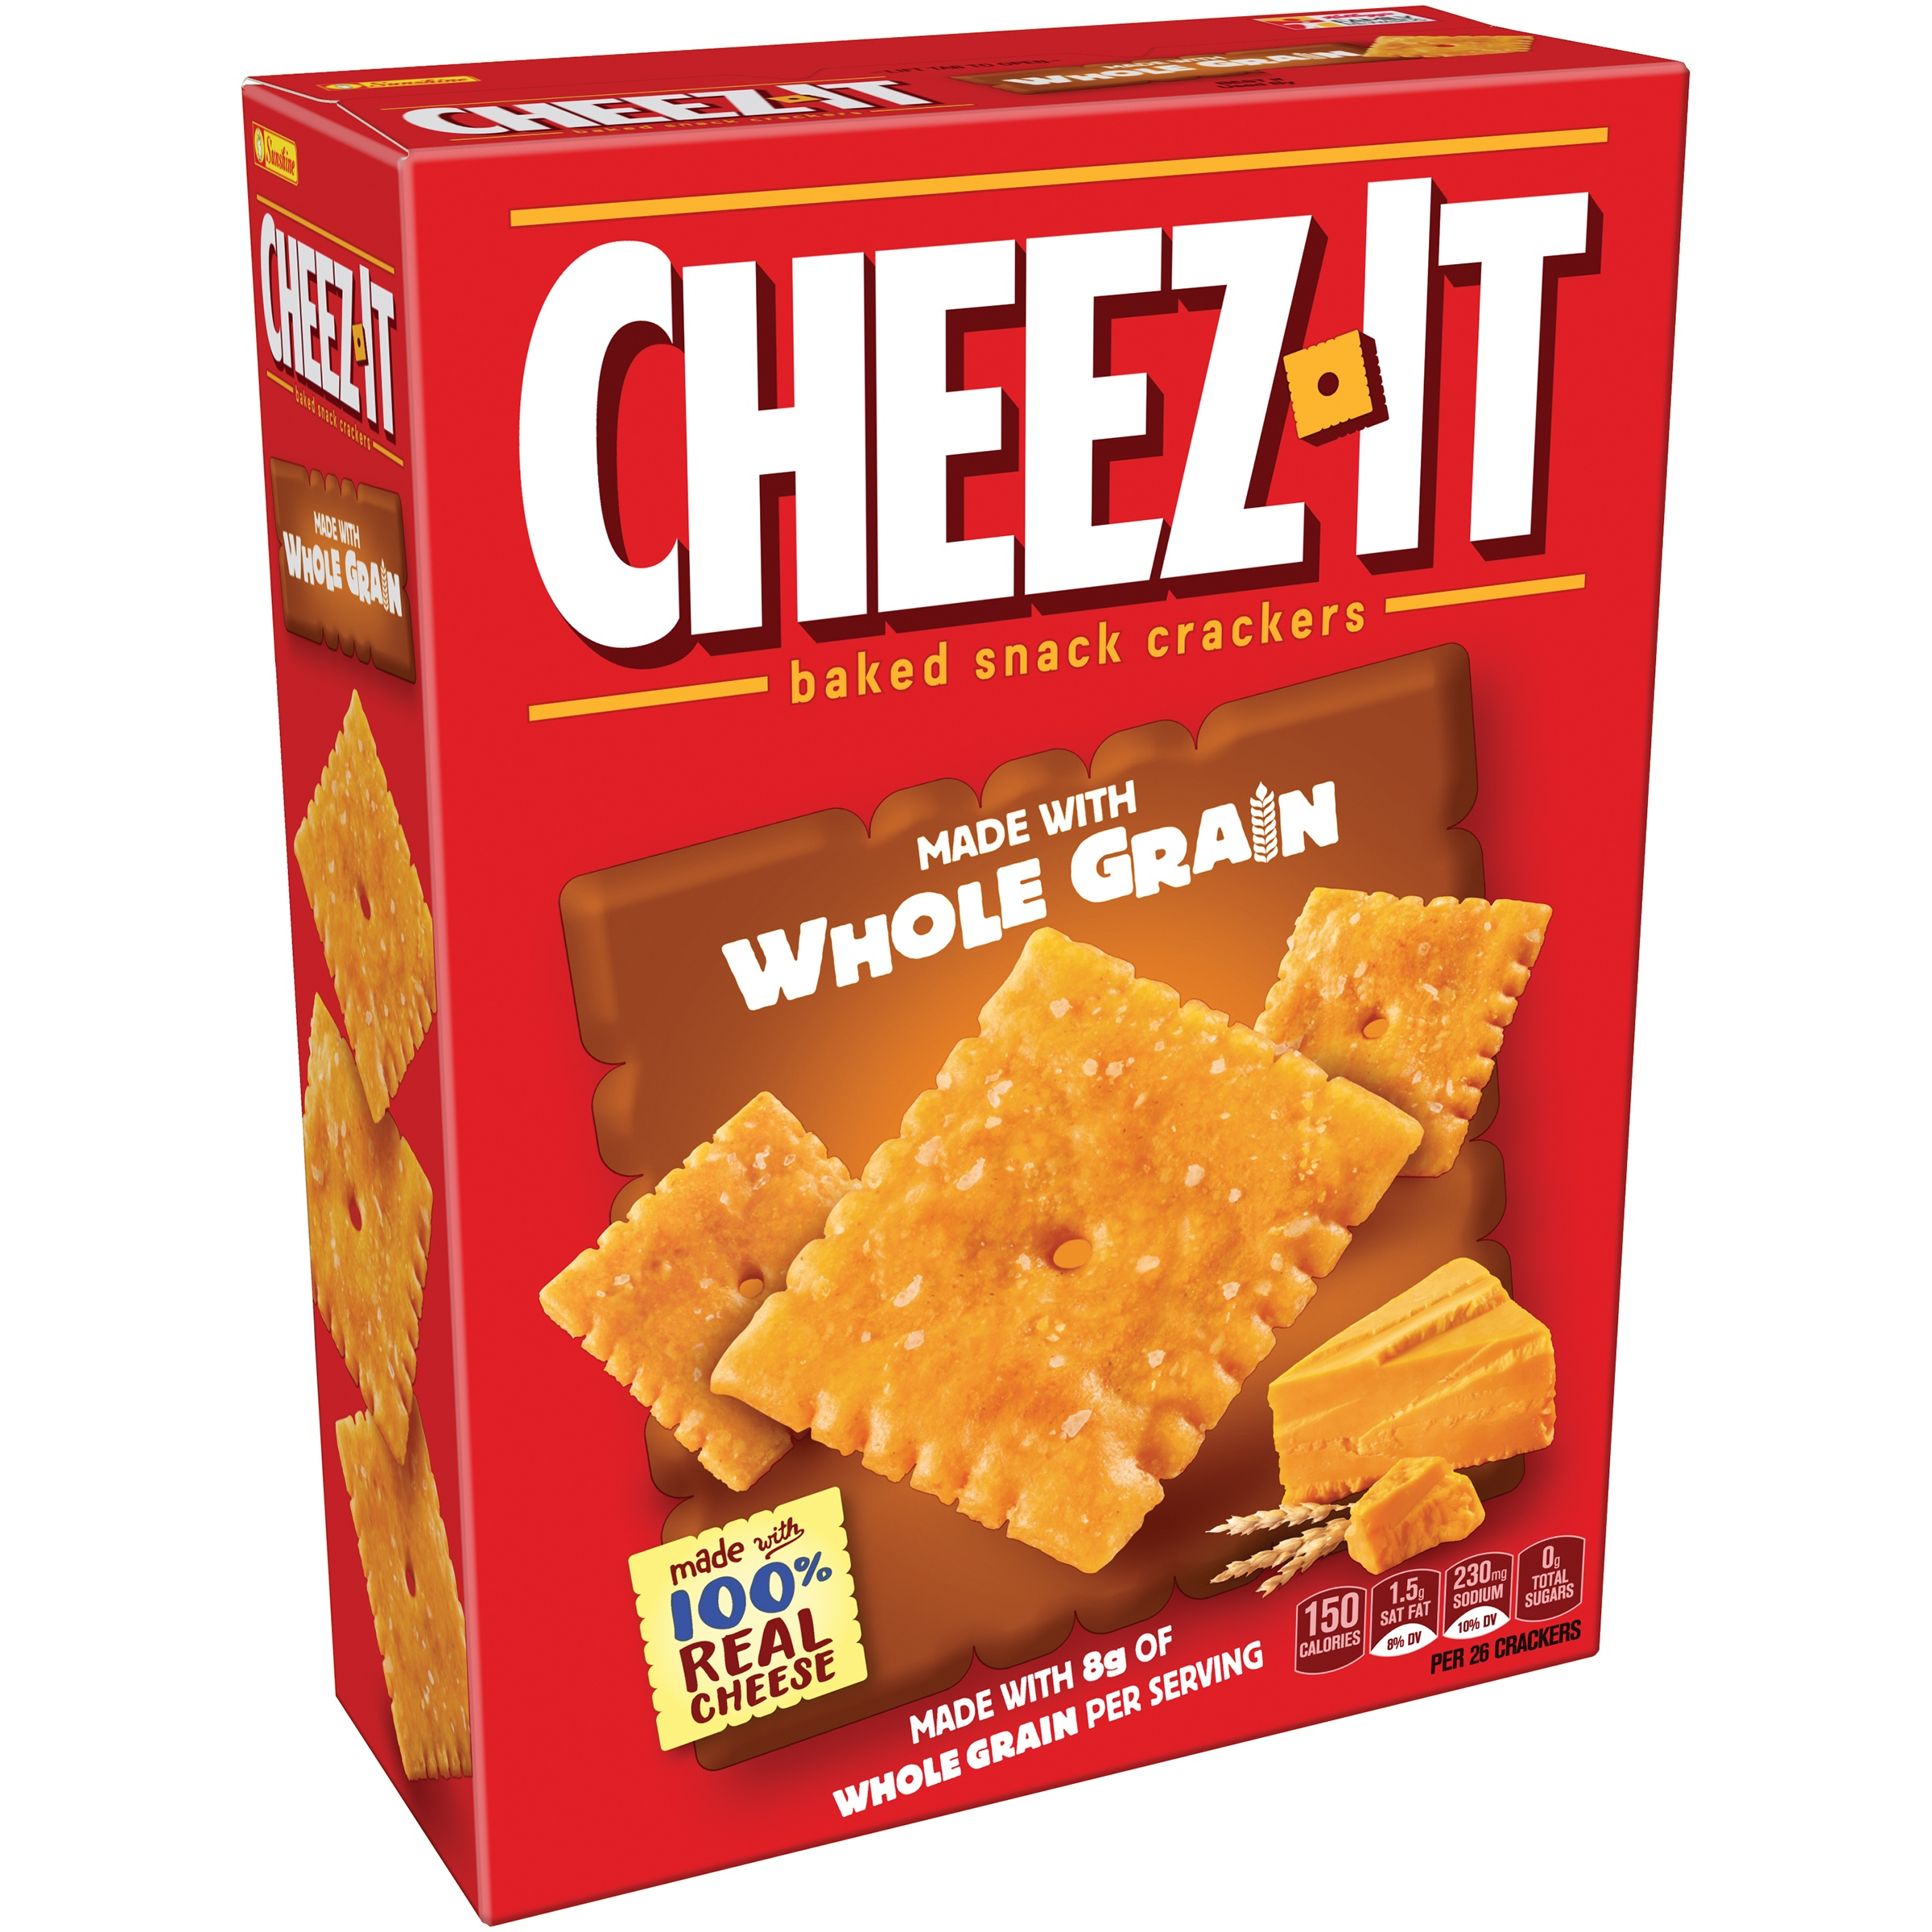 Cheez-It Whole Grain Baked Snack Crackers 12.4 oz. Box by Sunshine Biscuits, LLC